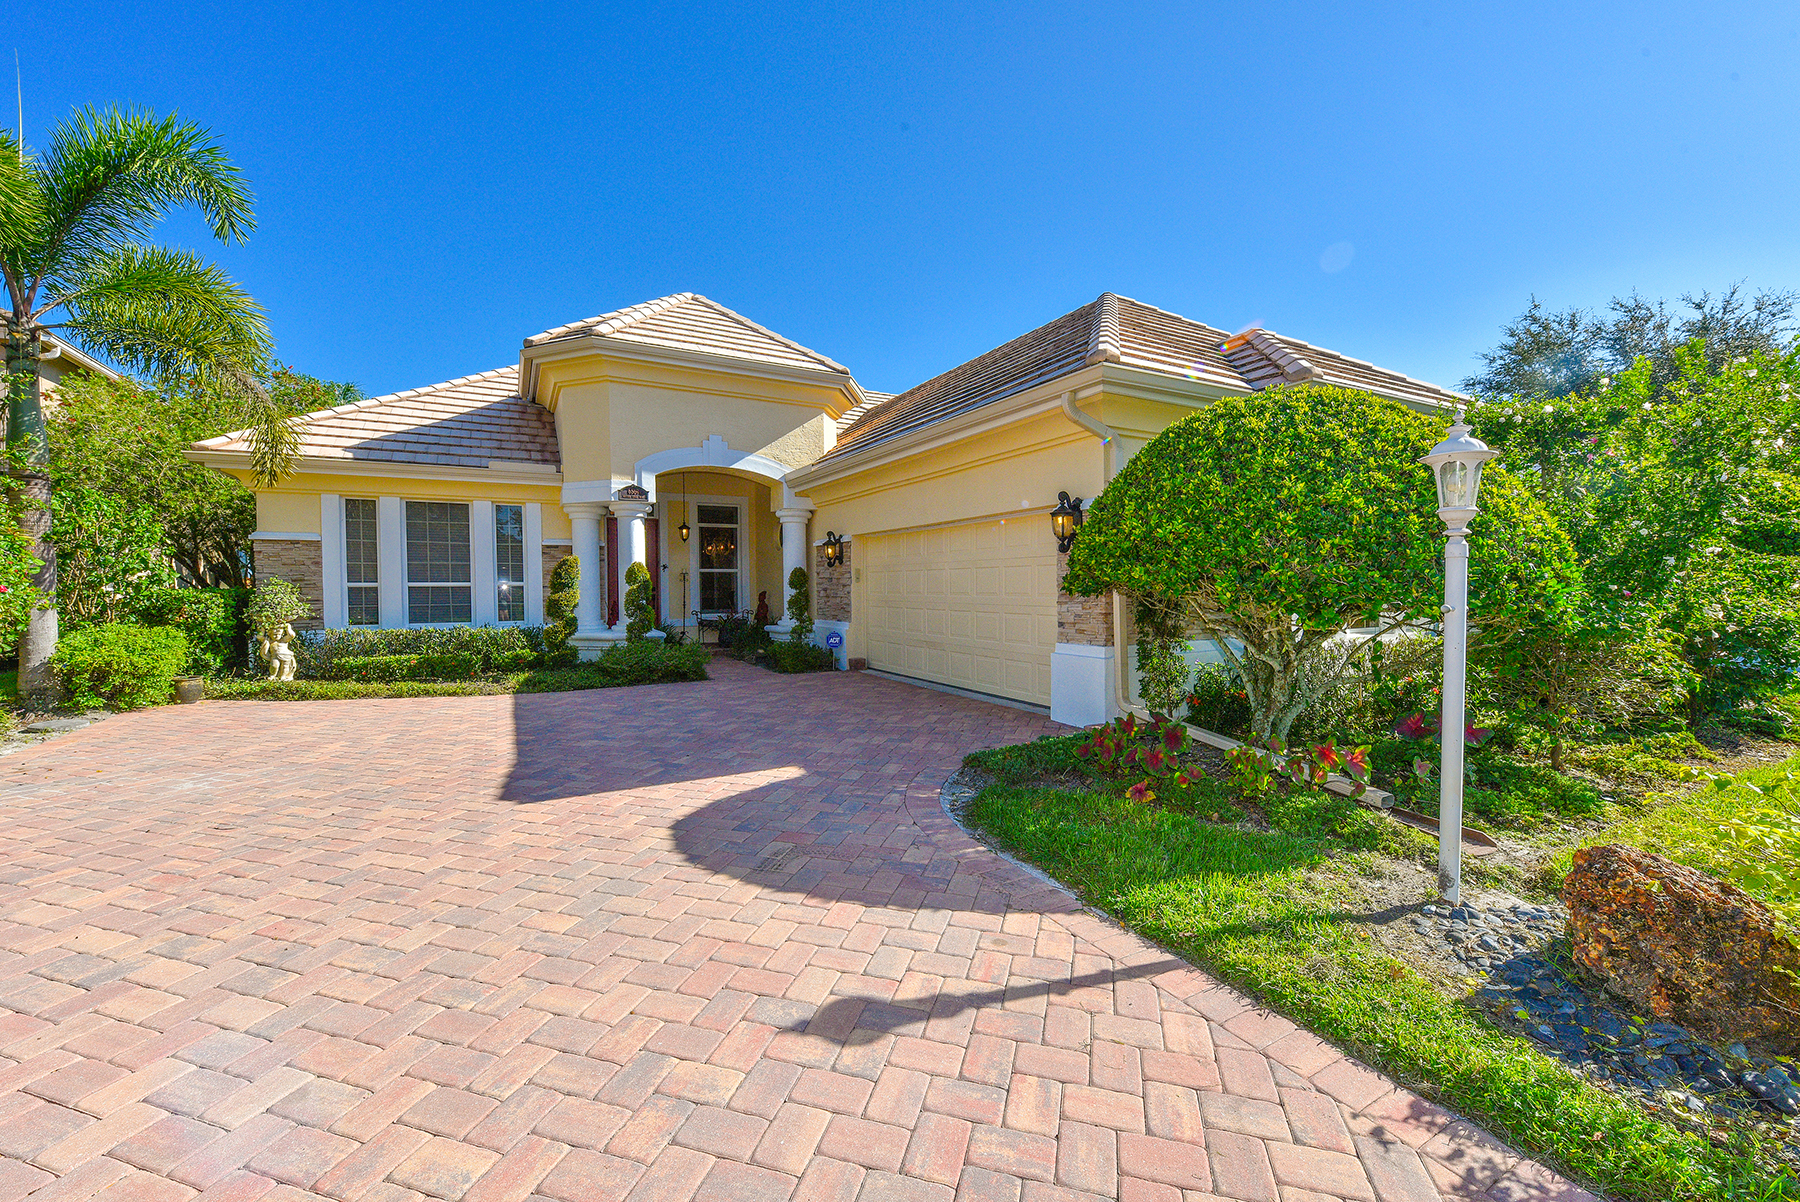 Single Family Home for Sale at EDGEWATER VILLAGE 6569 Waters Edge Way Lakewood Ranch, Florida, 34202 United States